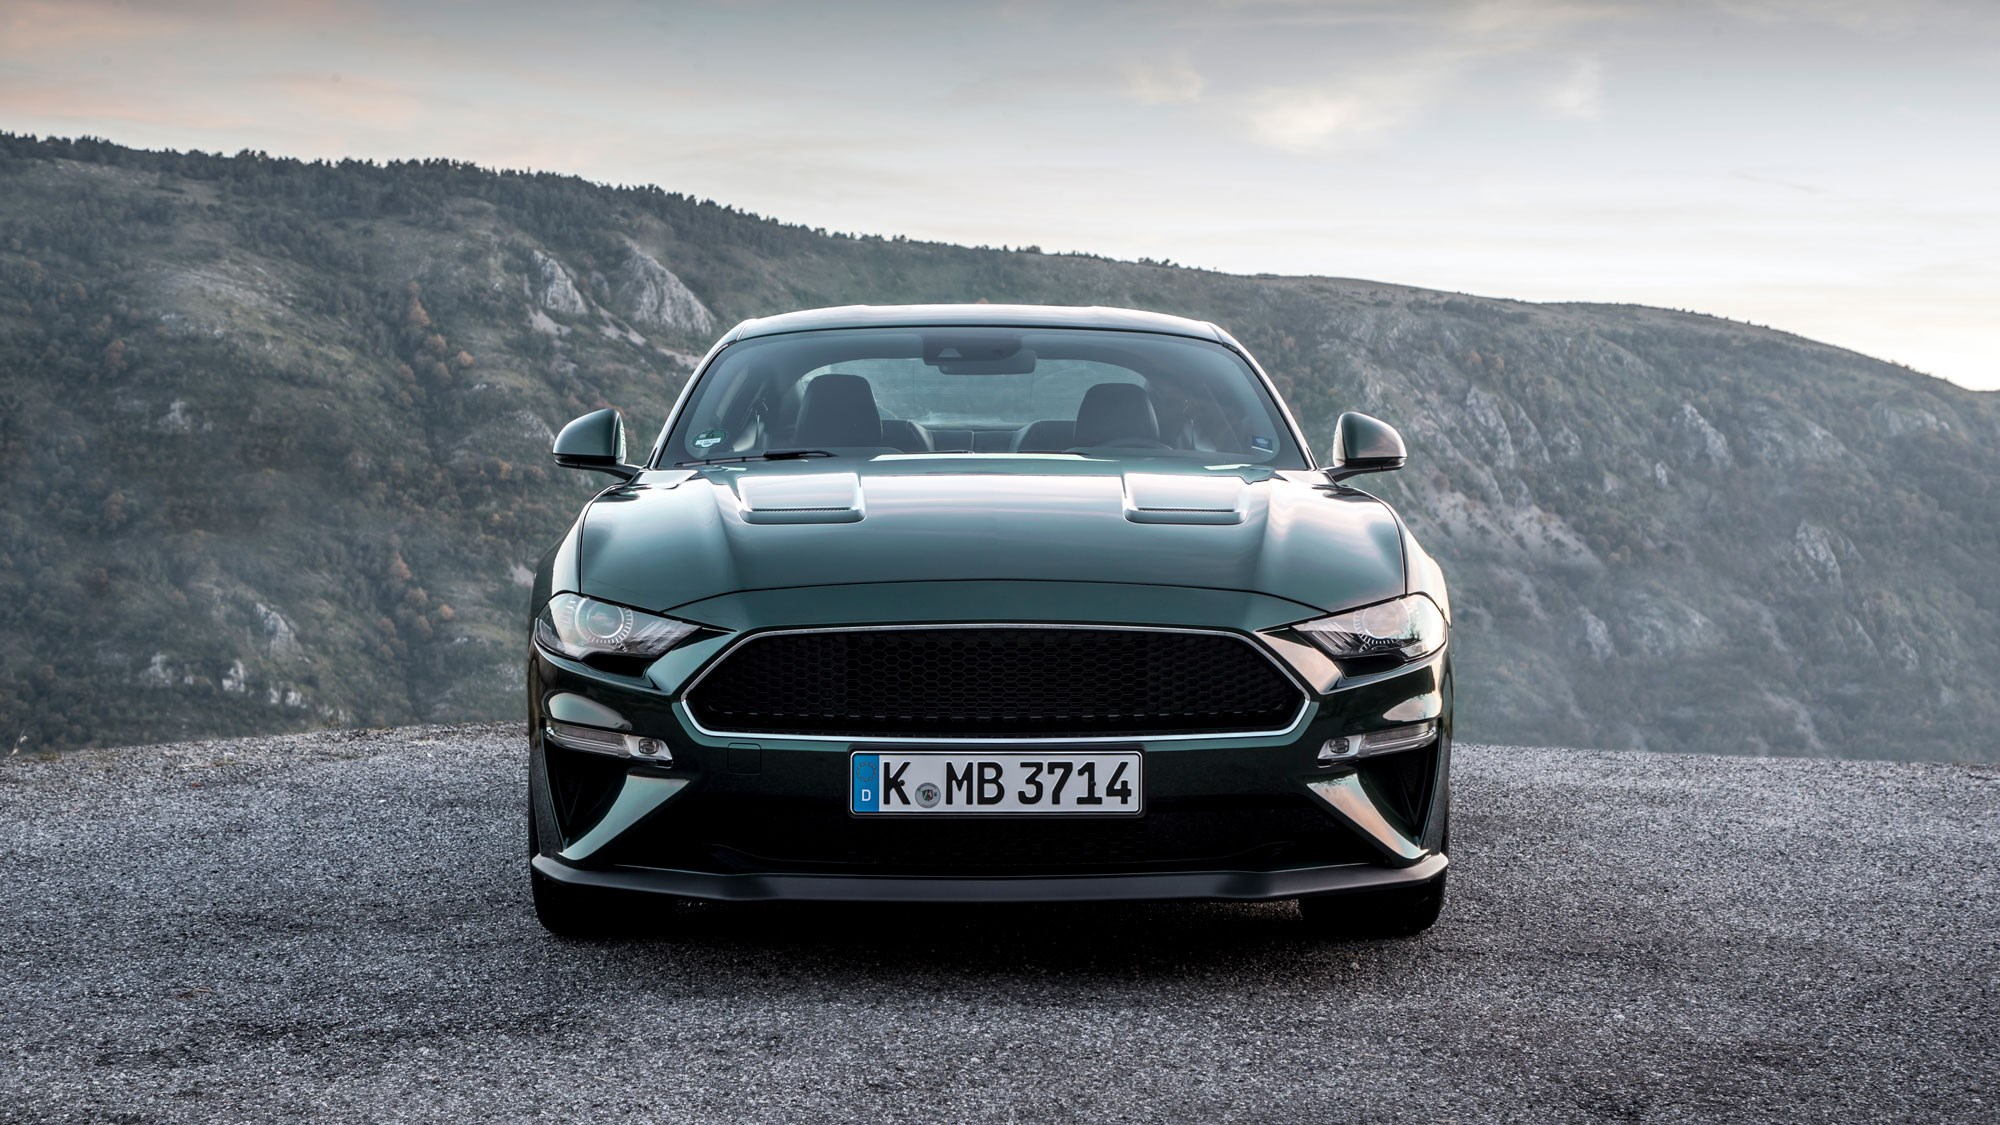 Ford Mustang Lease >> Ford Mustang Bullitt (2019) review: a little more ...